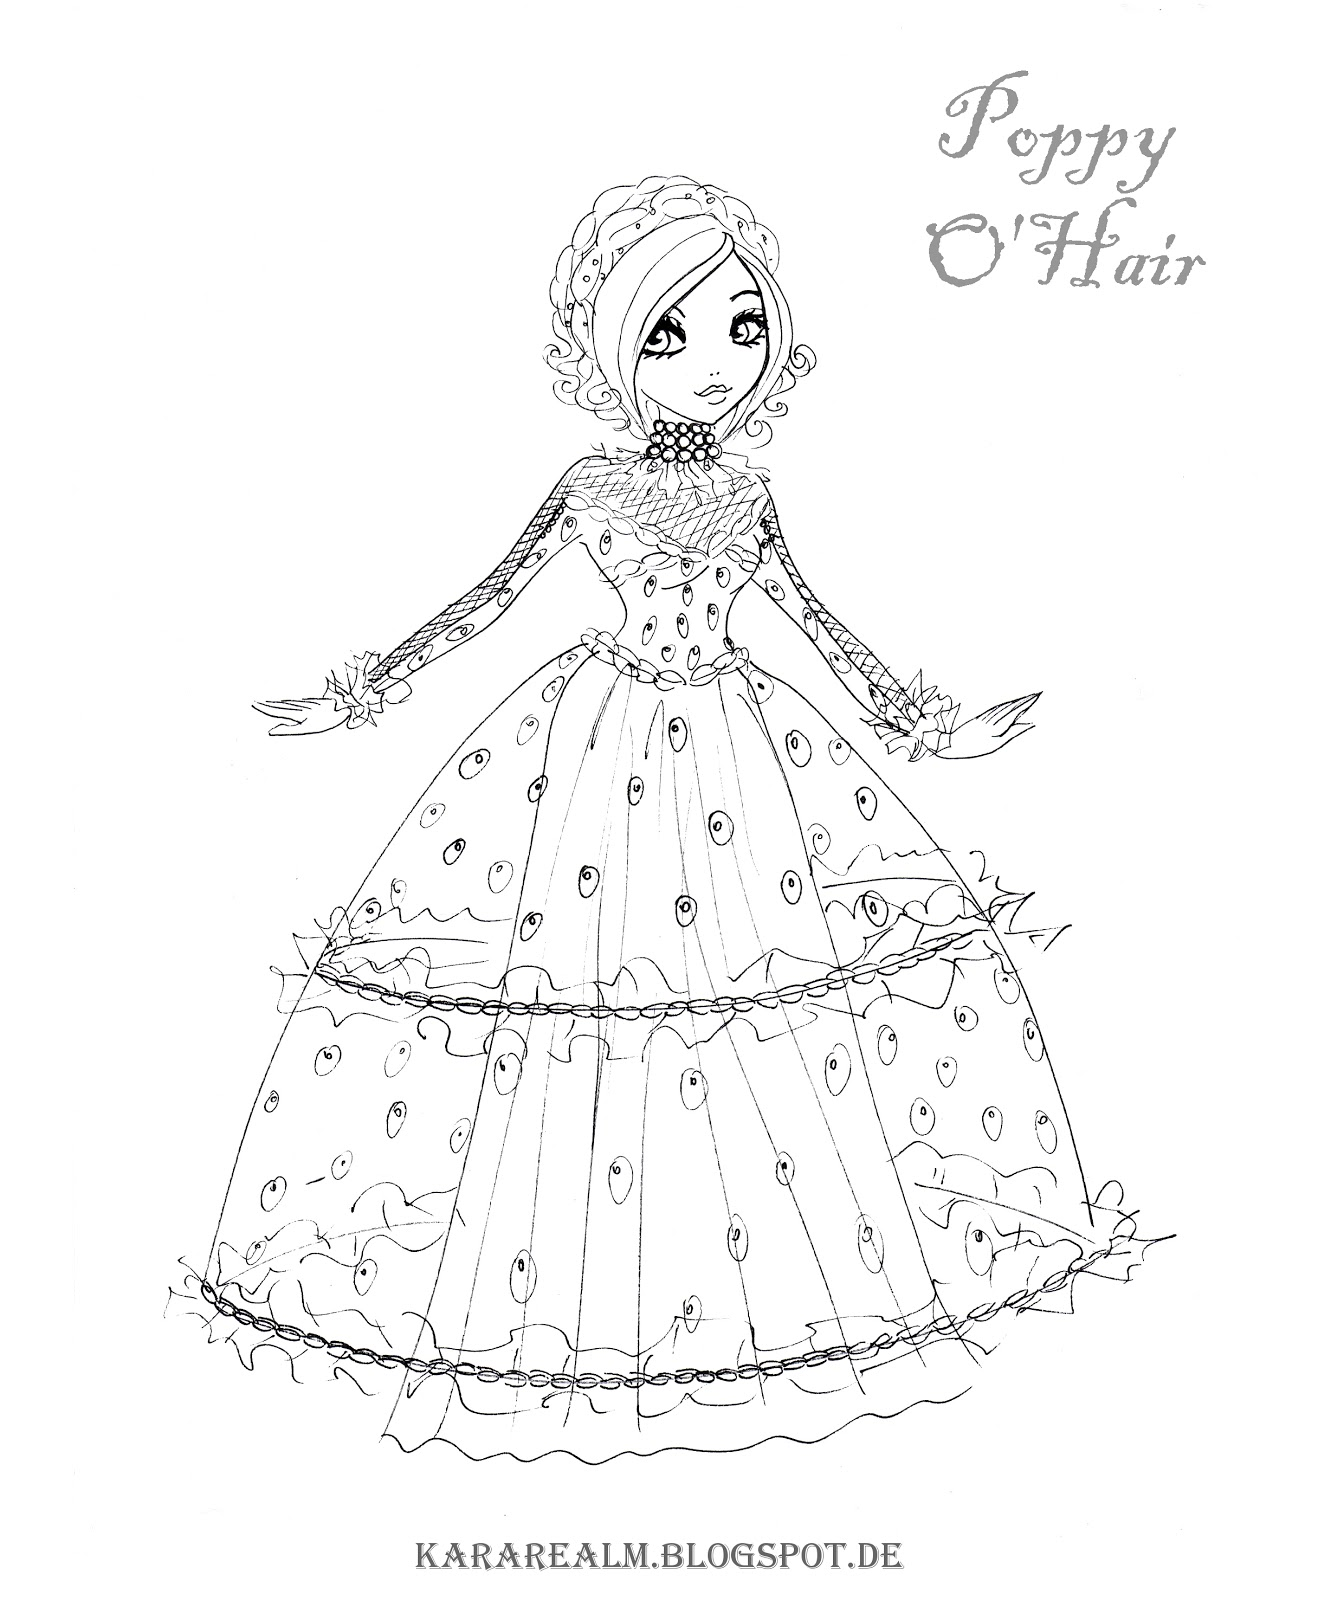 1331x1600 Inspiration Kara Realm Ever After High Coloring Pages